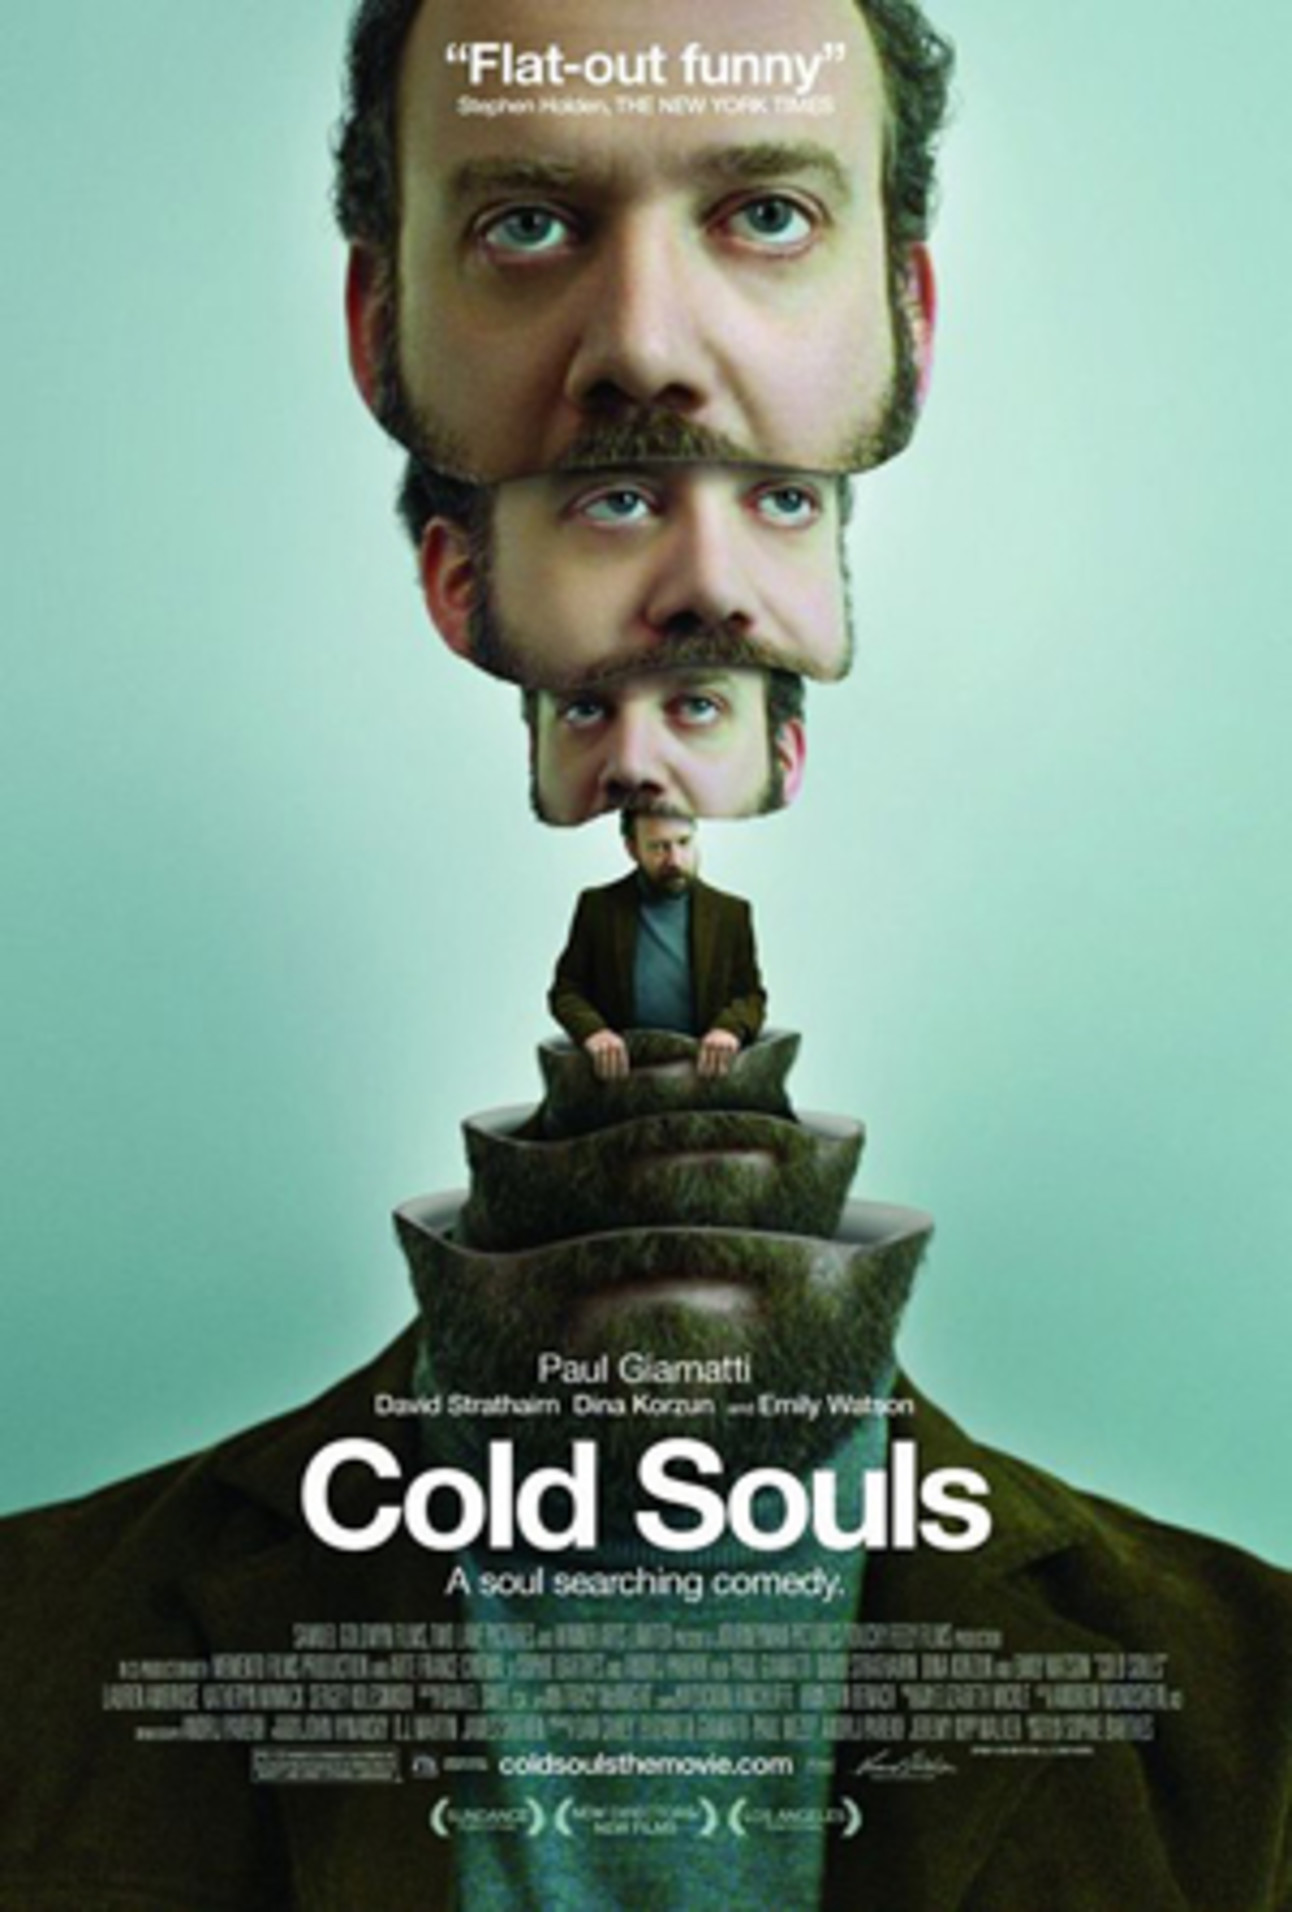 ColdSoulsReview1.jpg